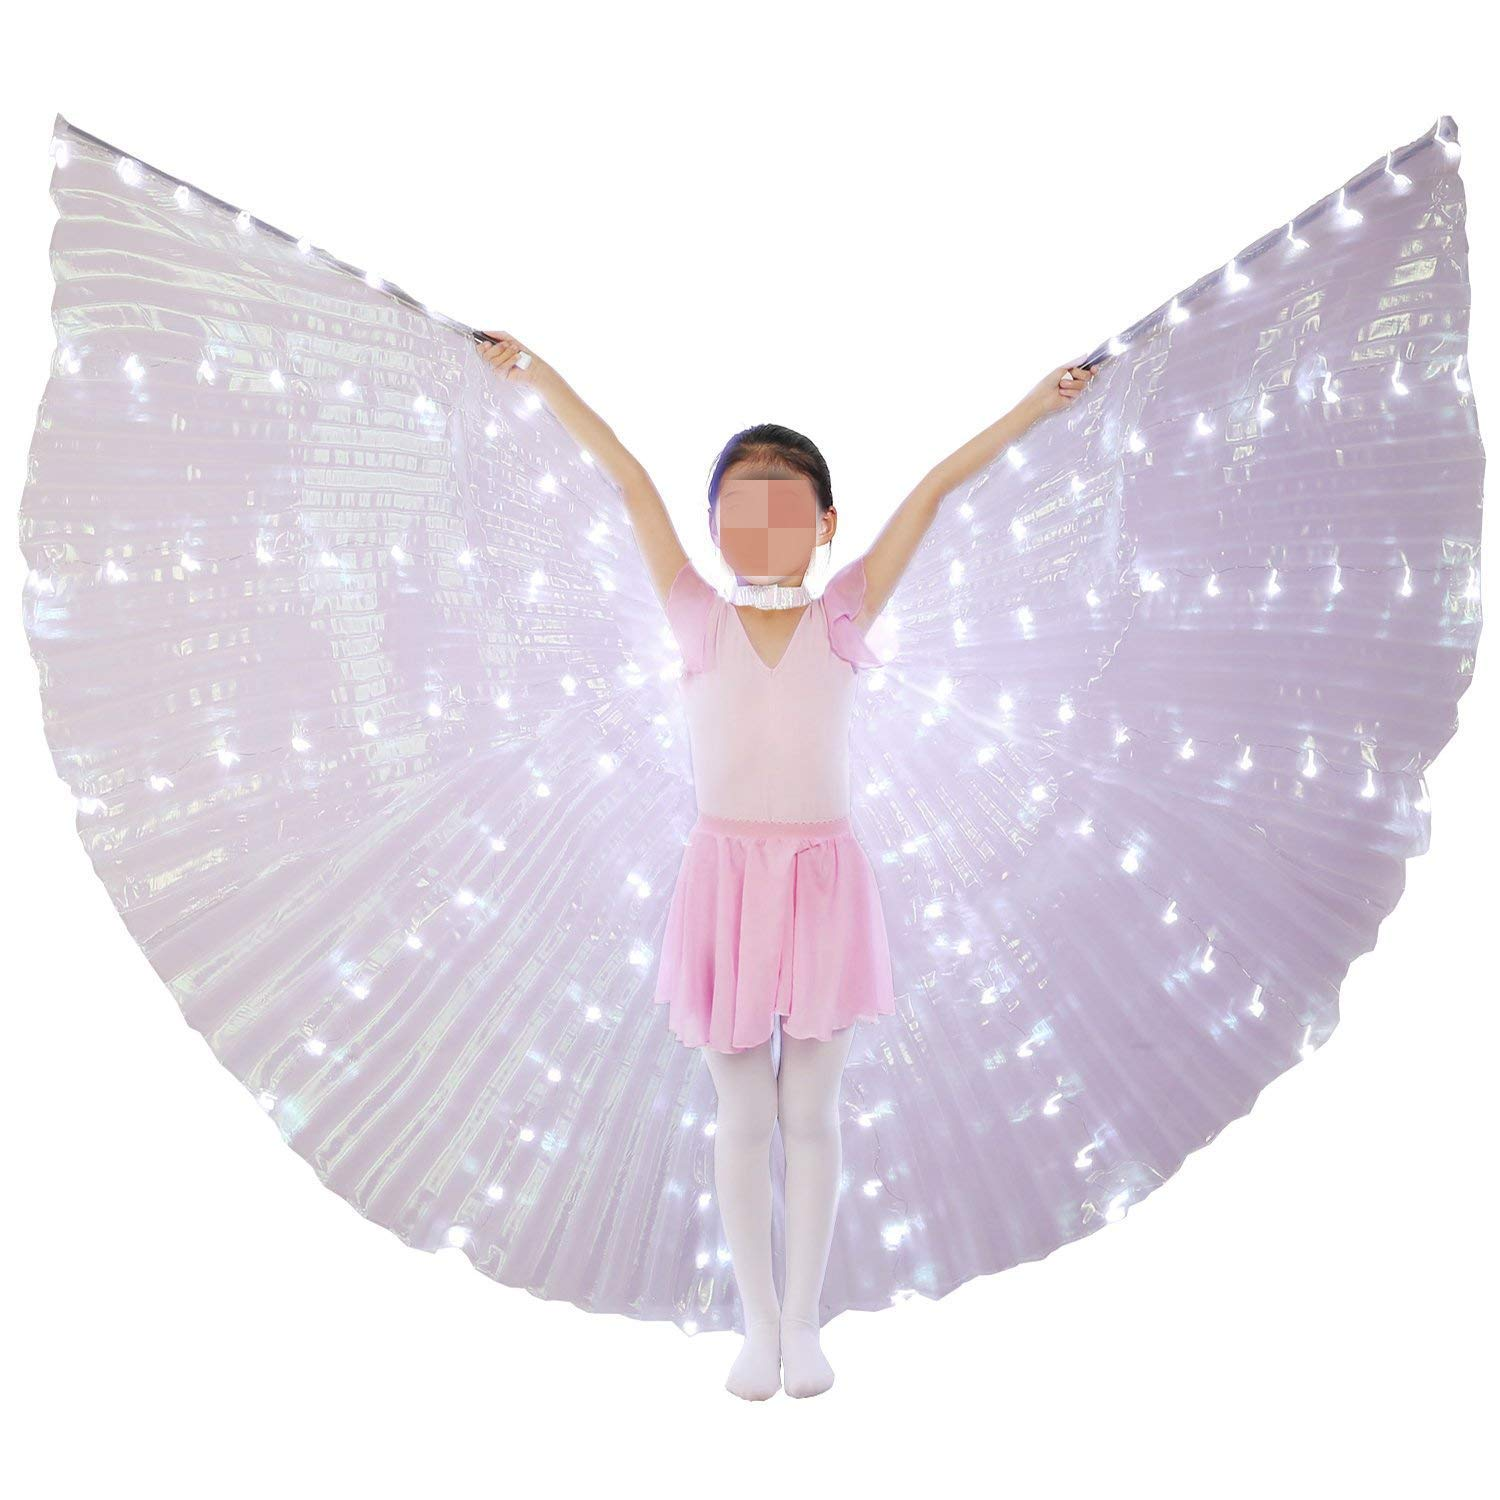 xiaoxiaoland εїз Belly Dance Wing with Rods-360 Degree Angel Wings with Portable Telescopic Sticks for Adults and Child,White-child by xiaoxiaoland